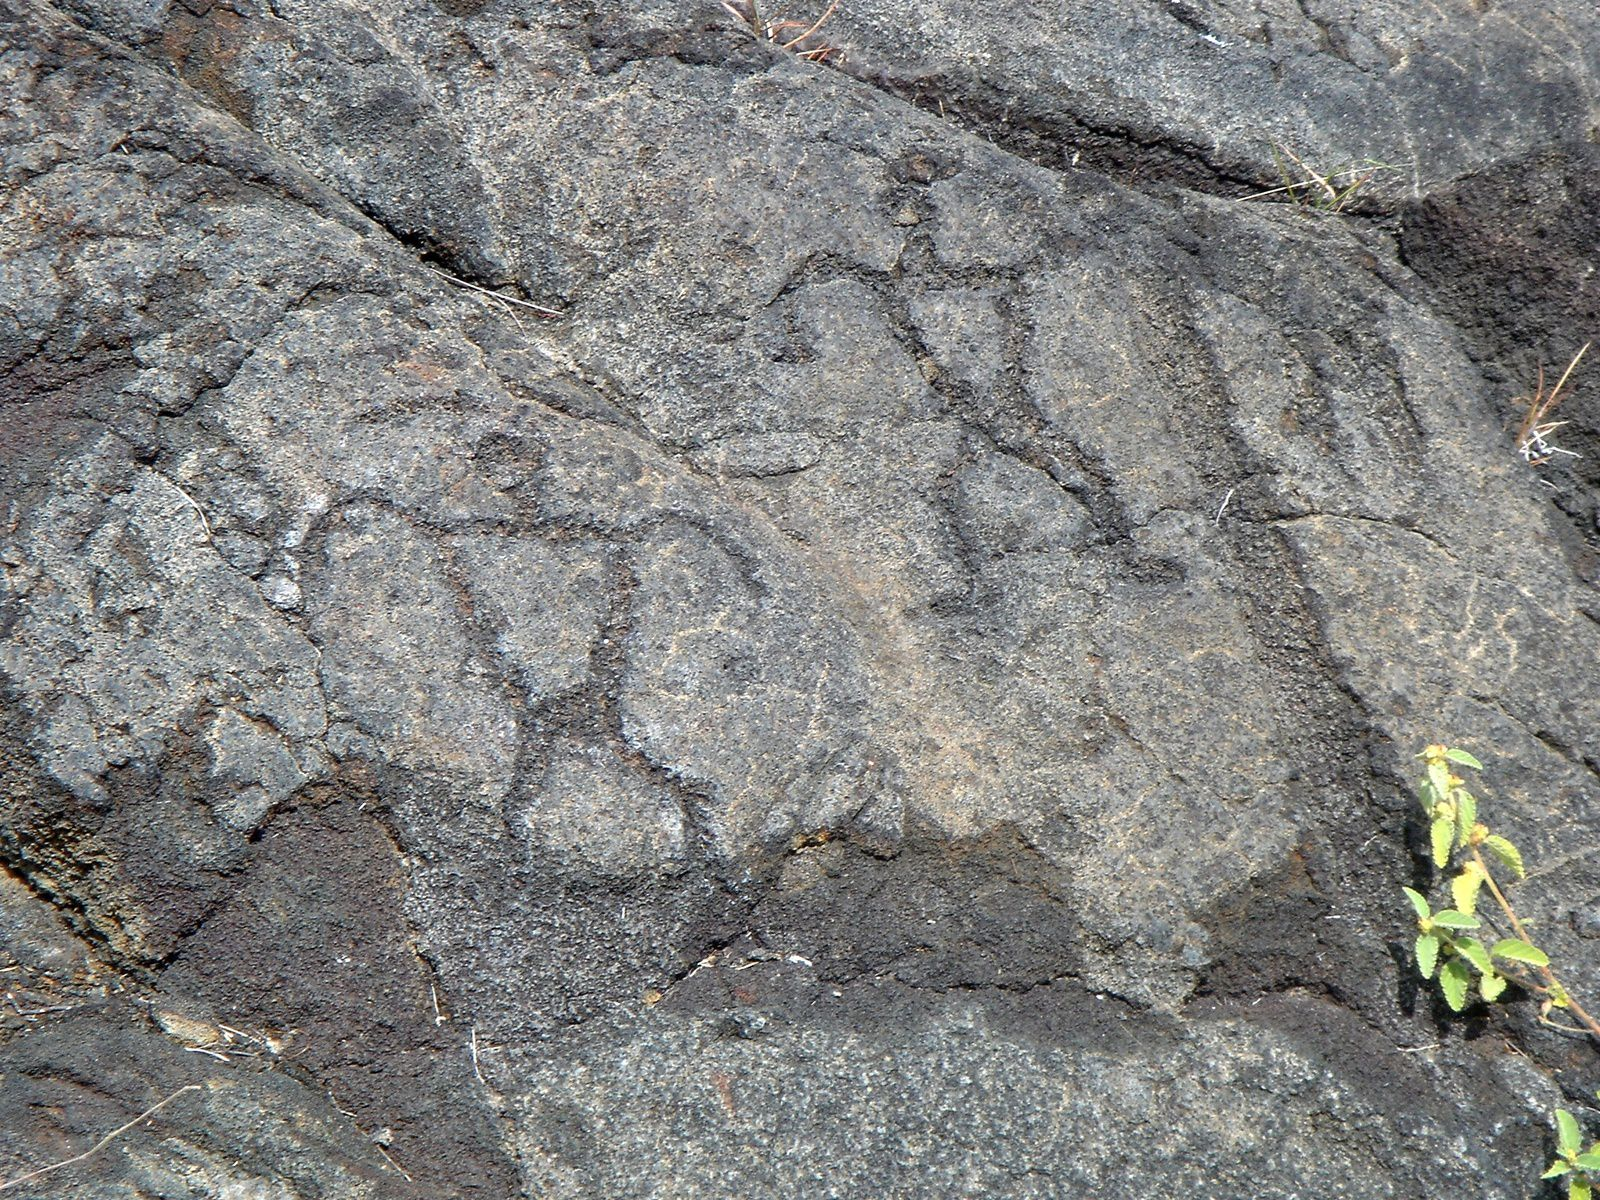 Pu'u Loa Petroglyphs, anthropomorphic figures - photo Staecker